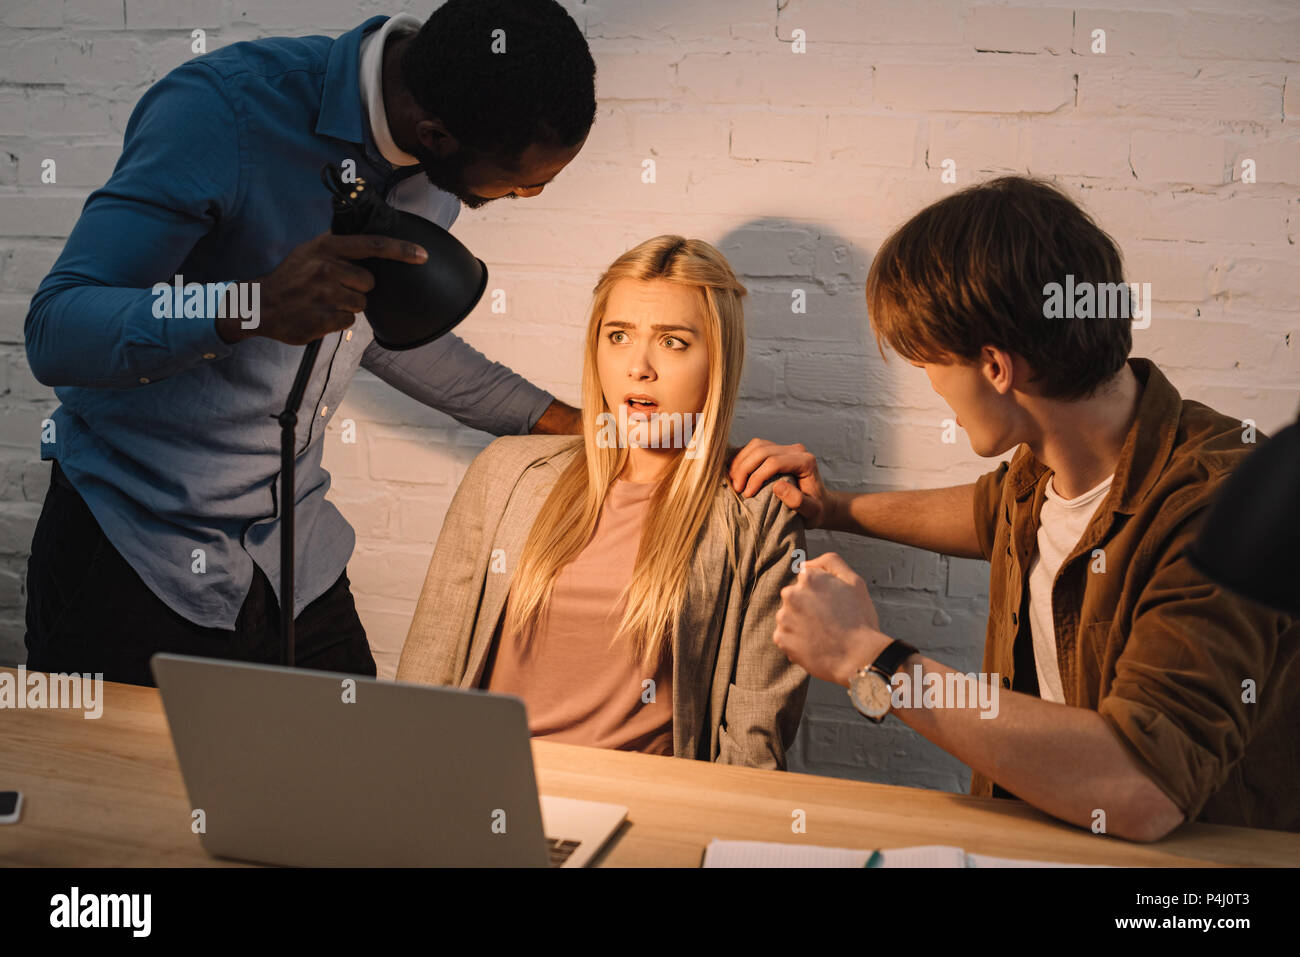 two multicultural businessmen threatening and shine lamp in face of businesswoman - Stock Image